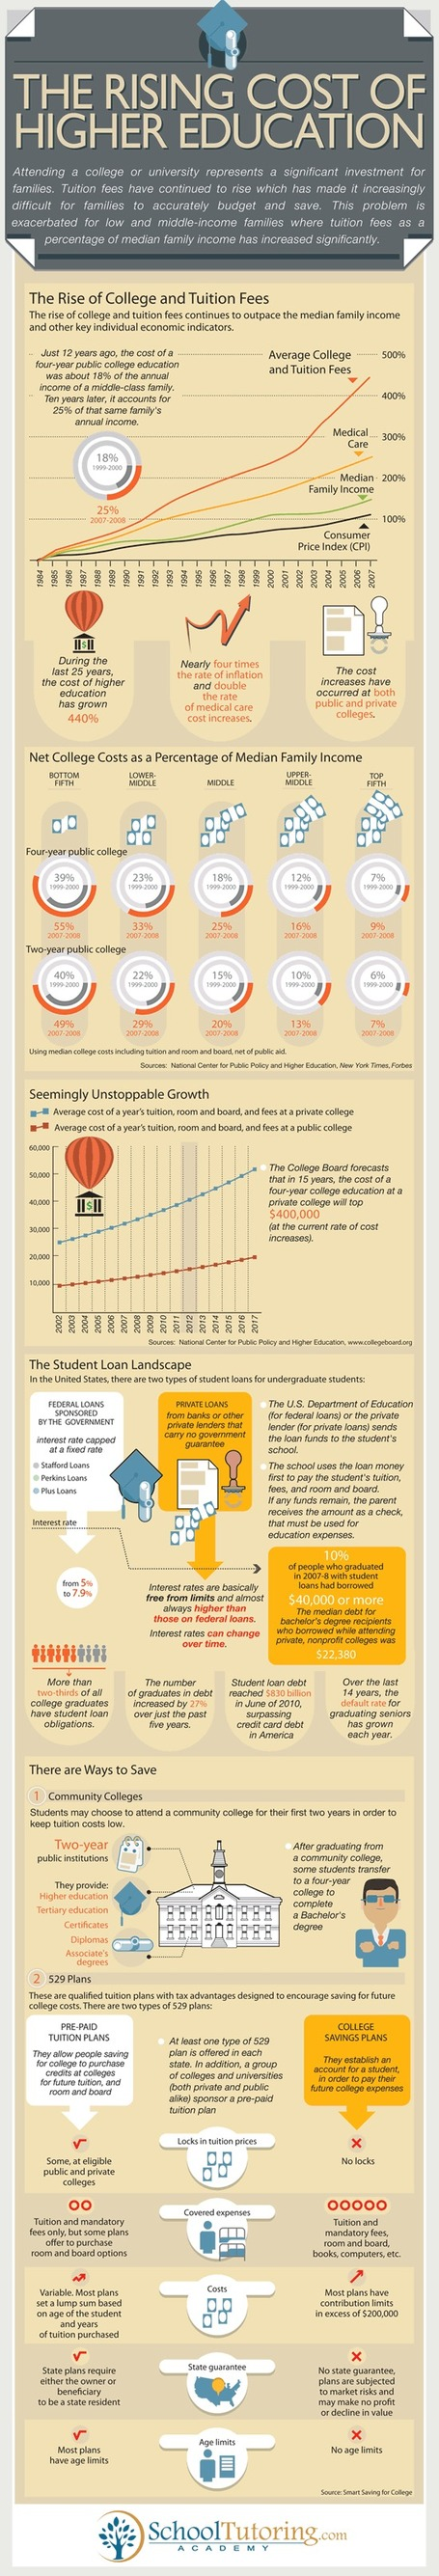 Case Study: How Education Cost has Grown up Quickly in Recent Times [Infographic] | All Infographics | Scoop.it